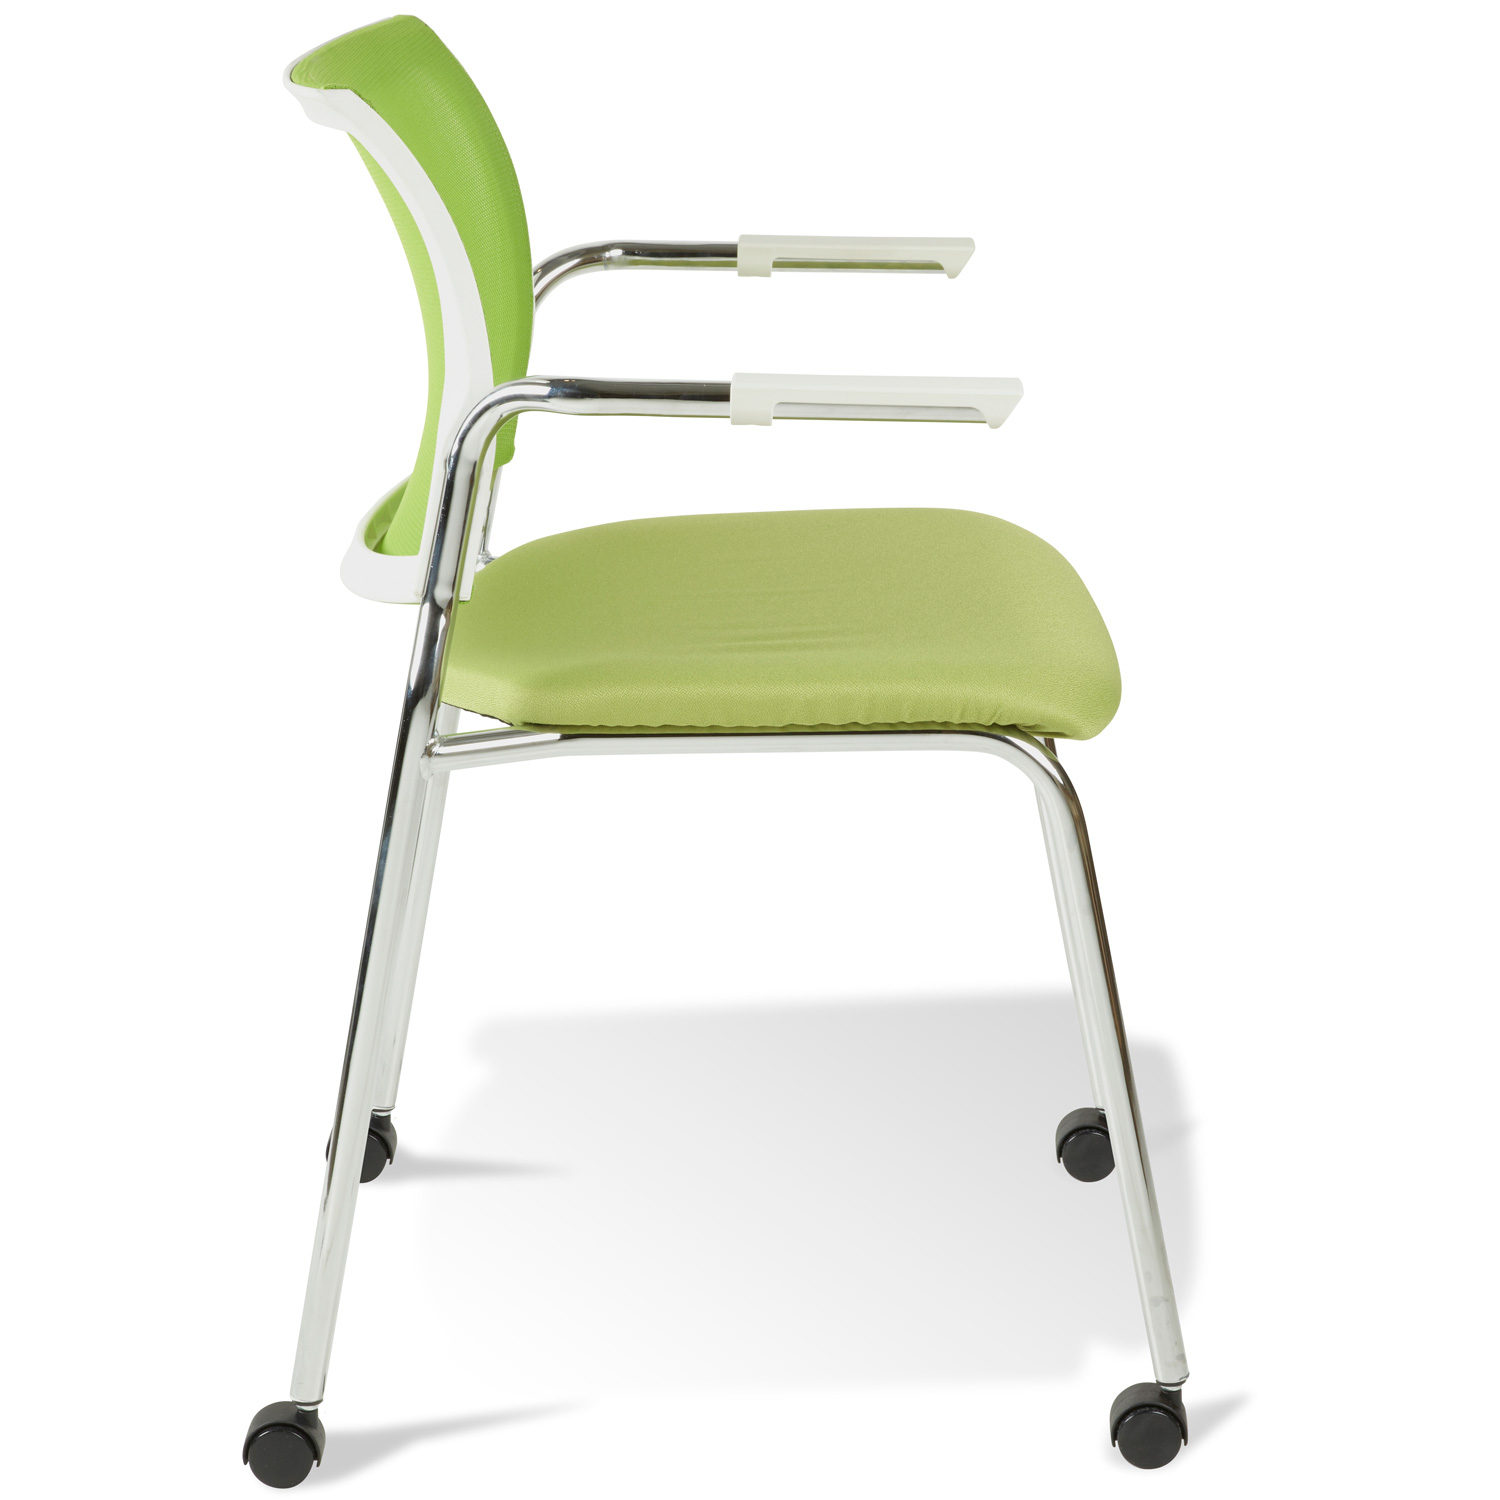 Jenna Conference Chair - Casters, Stackable, Green - UNIQ-X5358